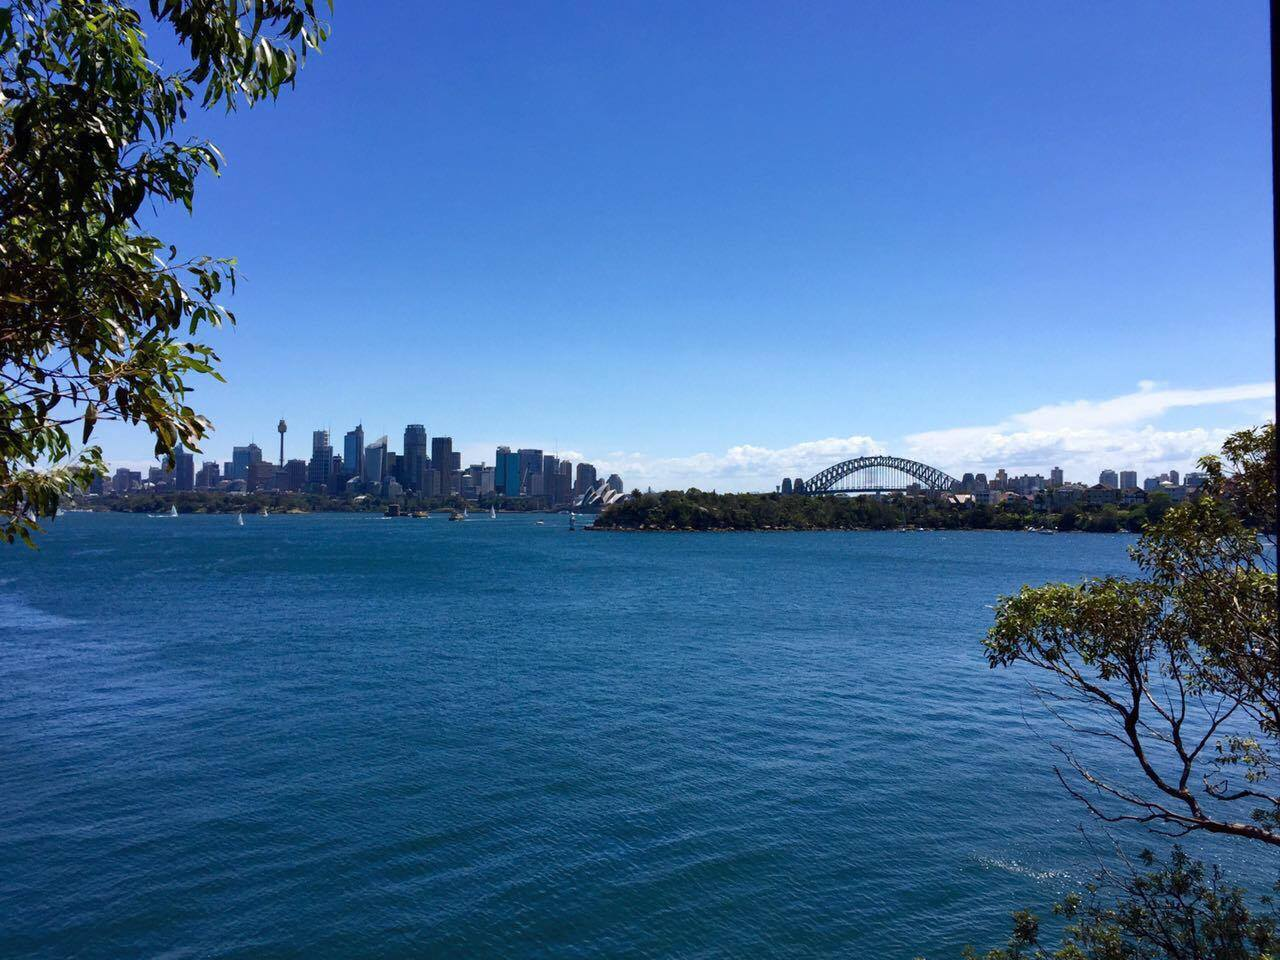 For an alternative view of  Sydney Harbor, opt to take the ferry from  Circular Quay . Ferries to nearby  Taronga Zoo also depart from the same location, and makes for a great day trip to discover koalas and kangaroos up close.